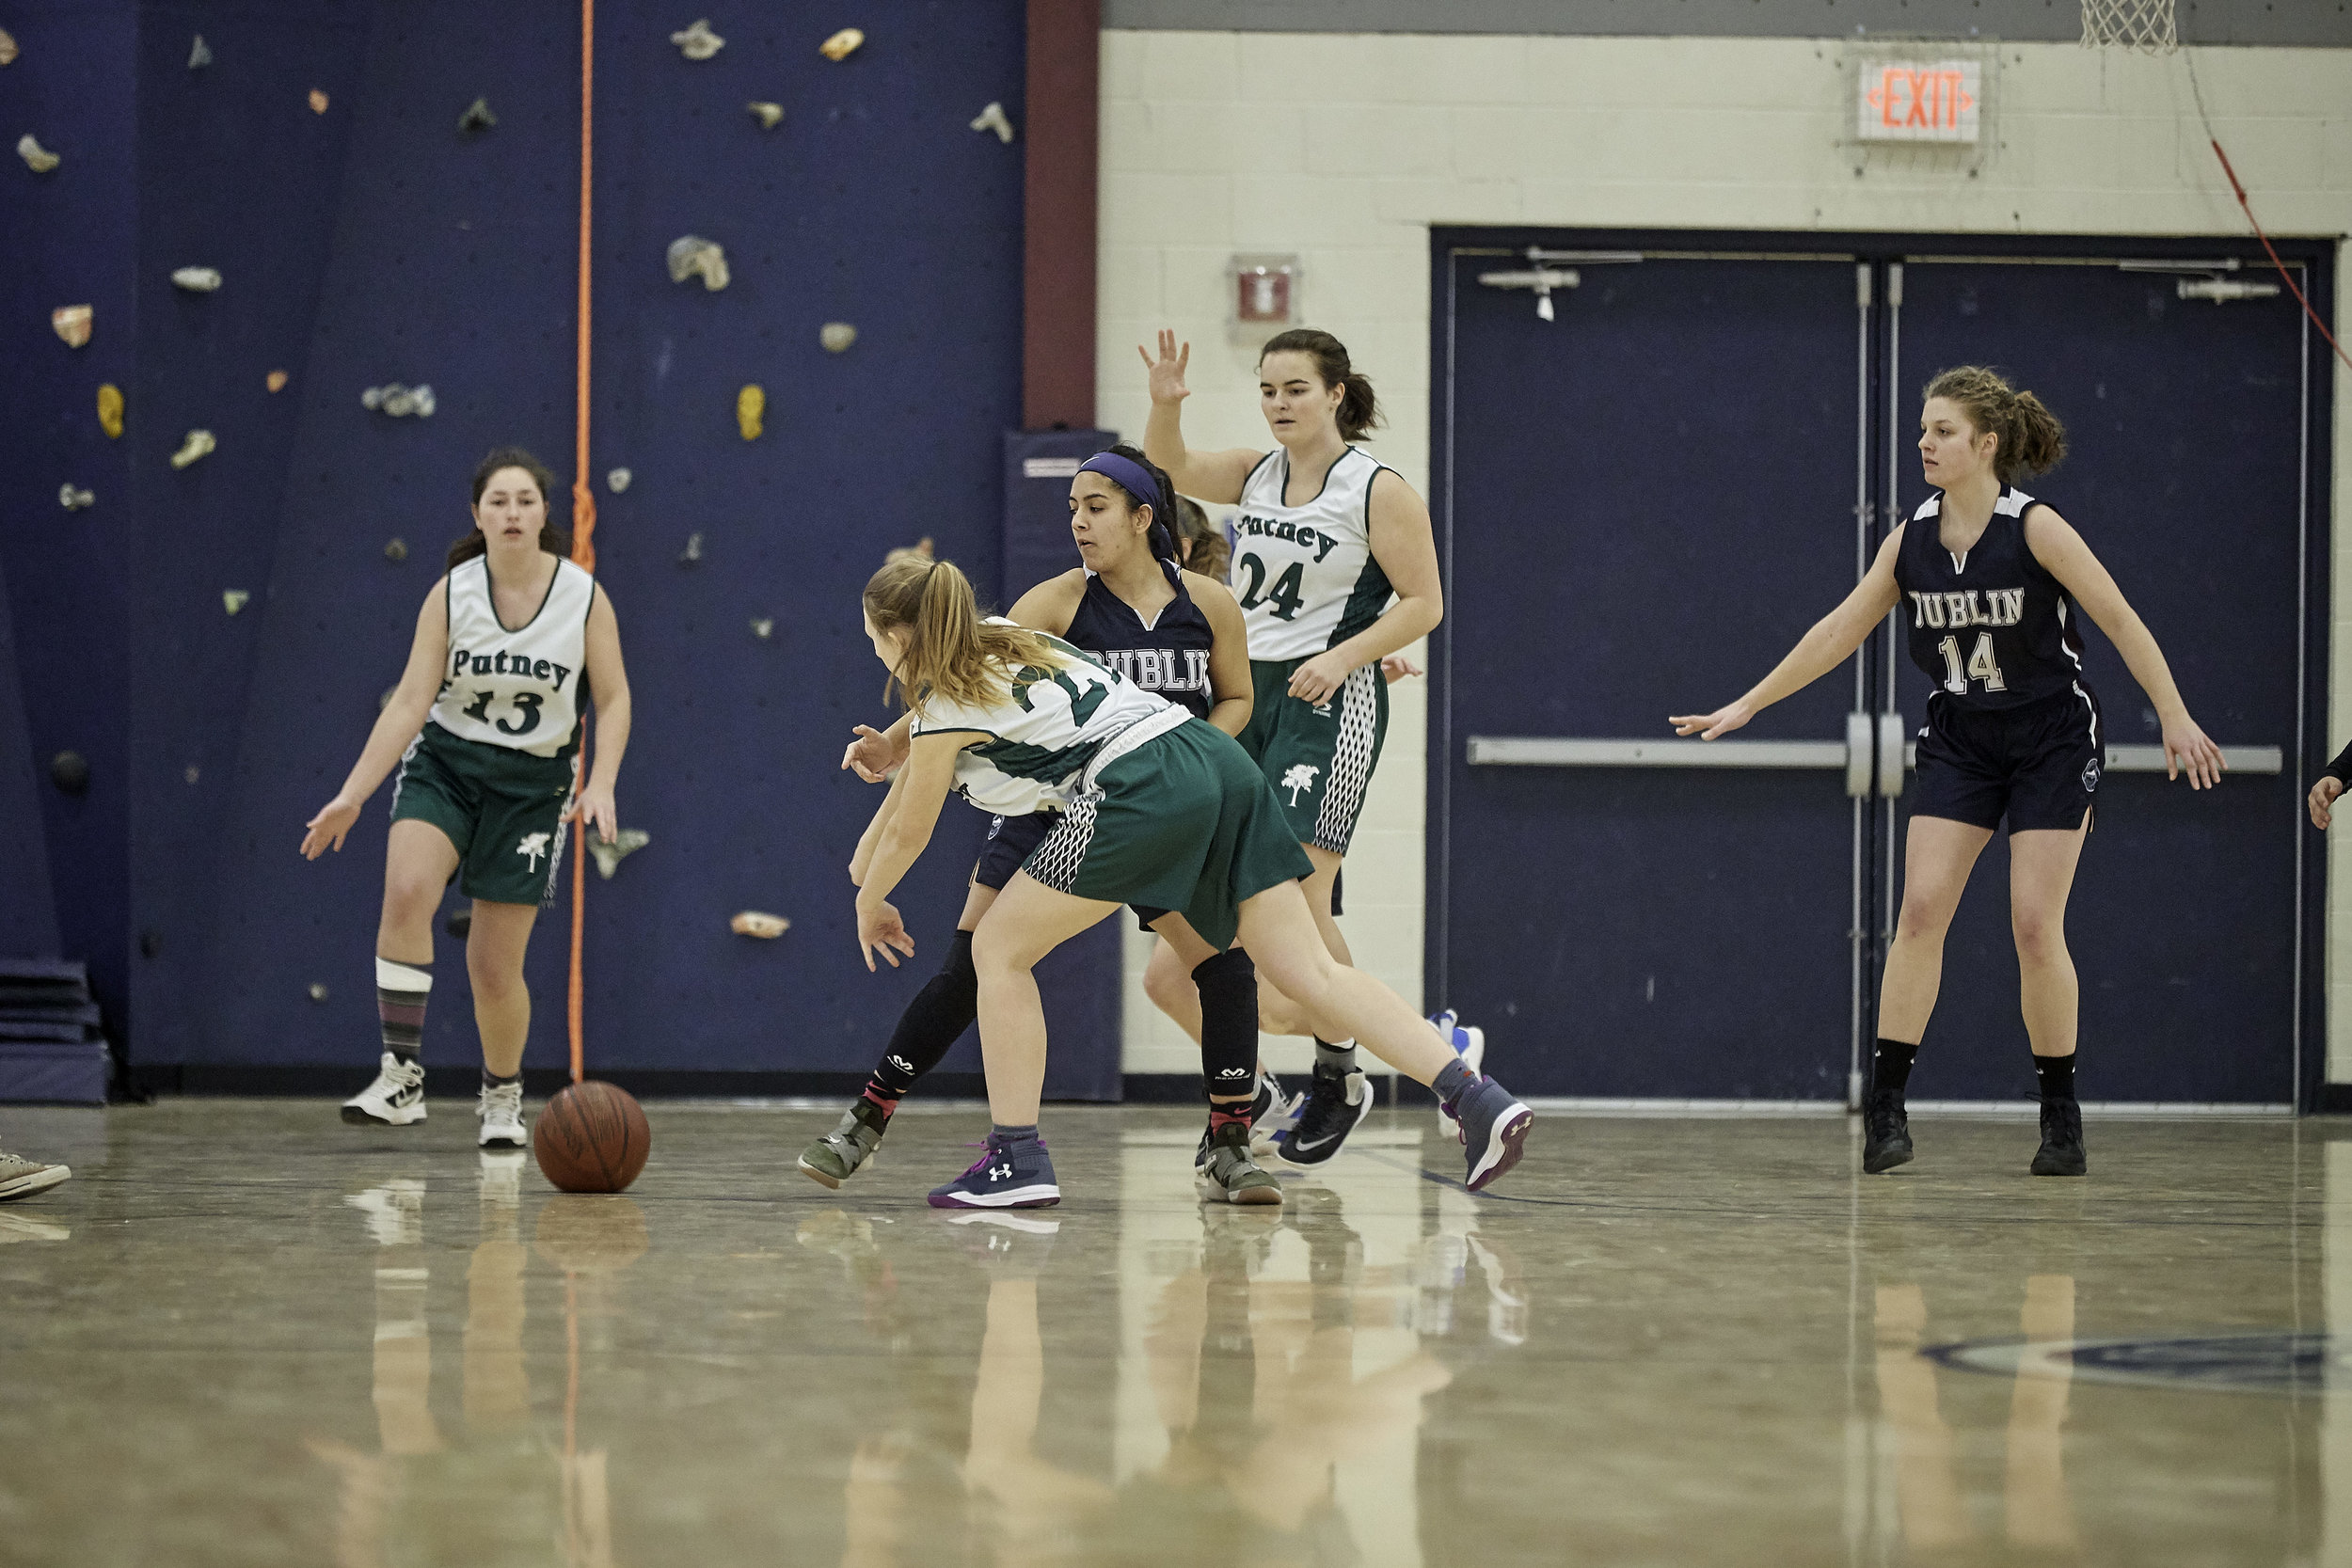 Basketball vs Putney School, February 9, 2019 - 167095.jpg